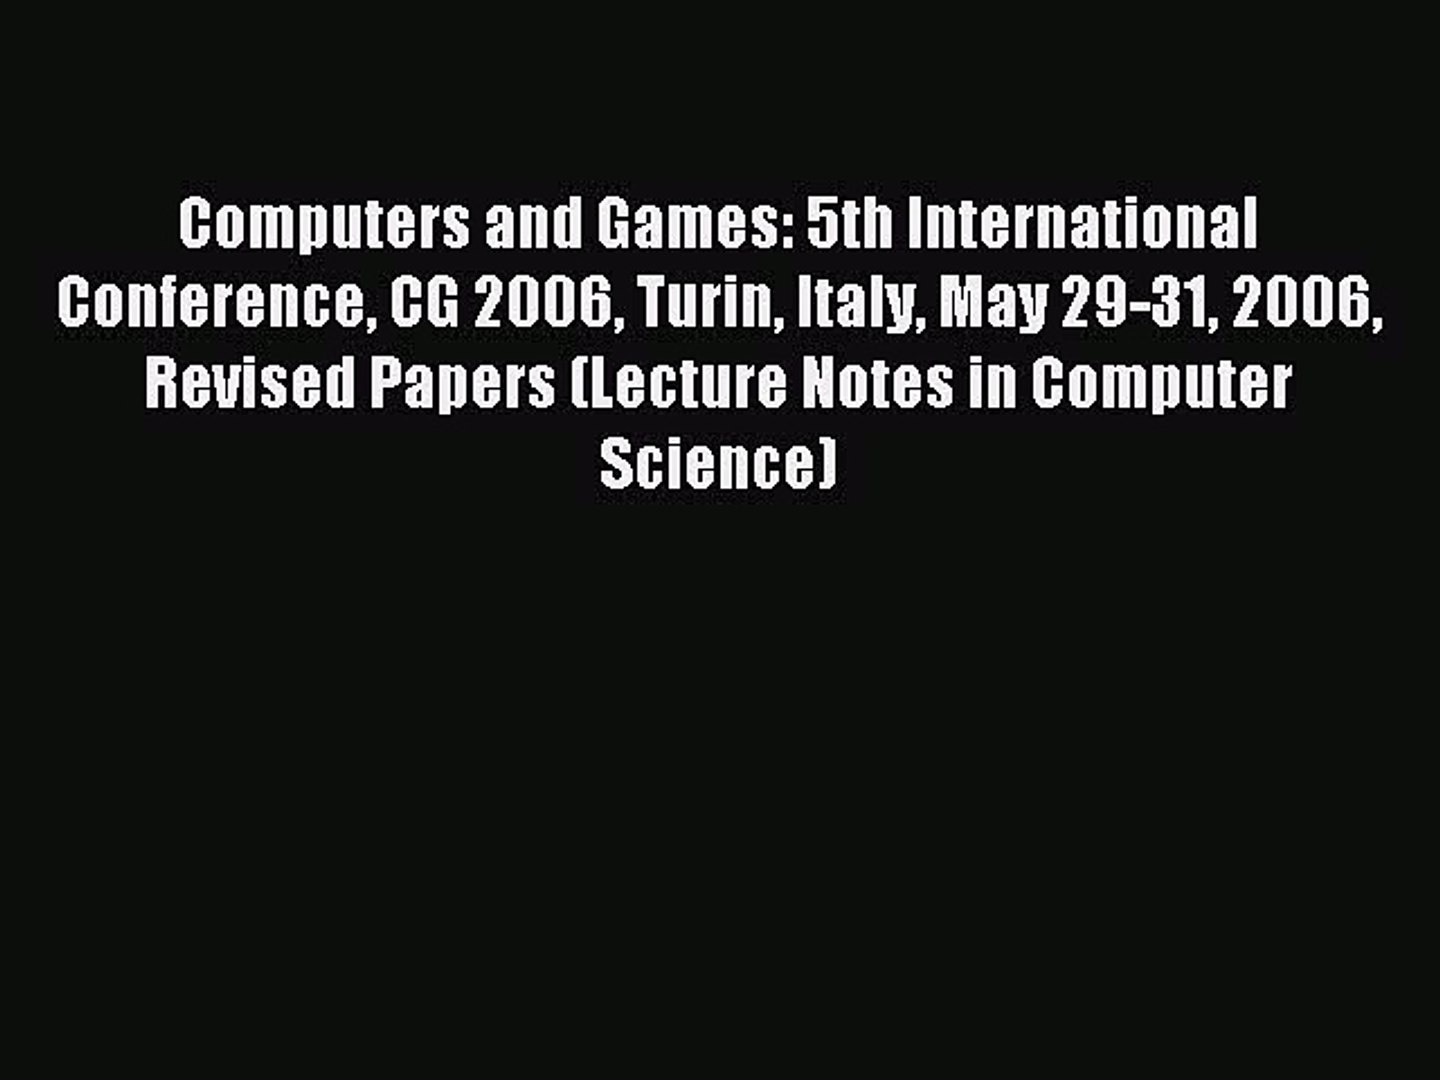 Read Computers and Games: 5th International Conference CG 2006 Turin Italy May 29-31 2006 Revised